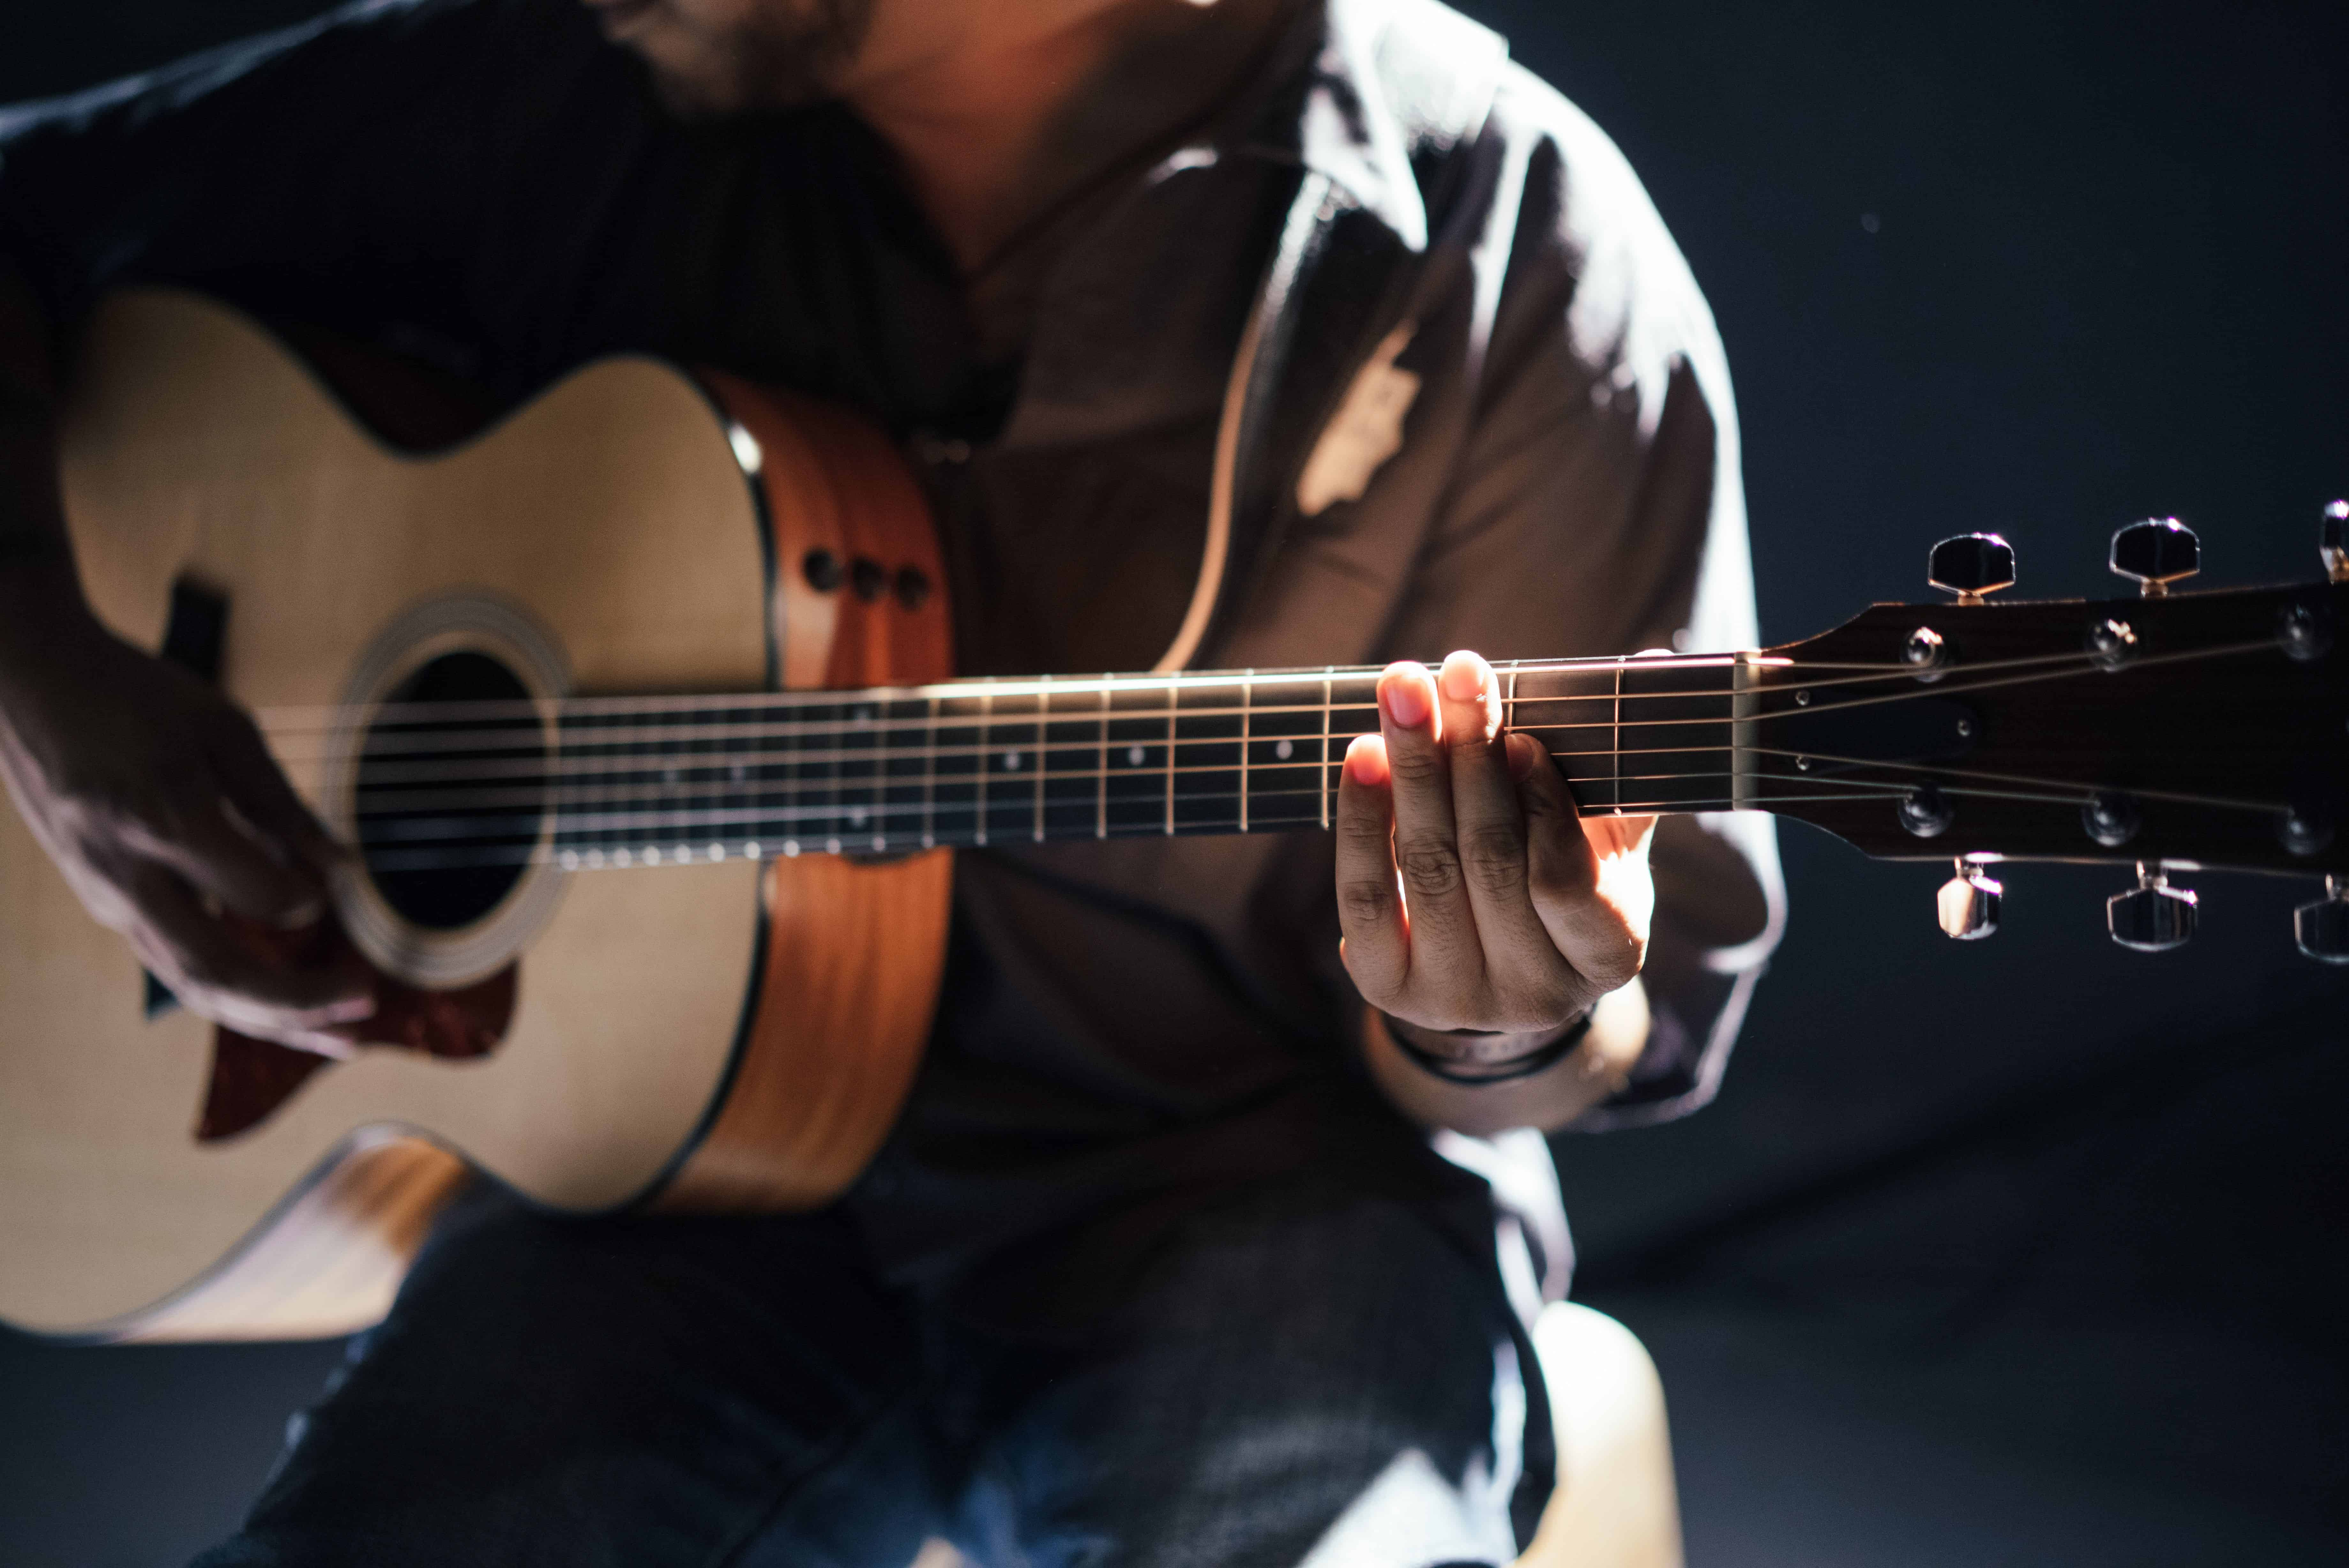 The Best Guitar Chair – The Stool You Need To Improve Your Playing